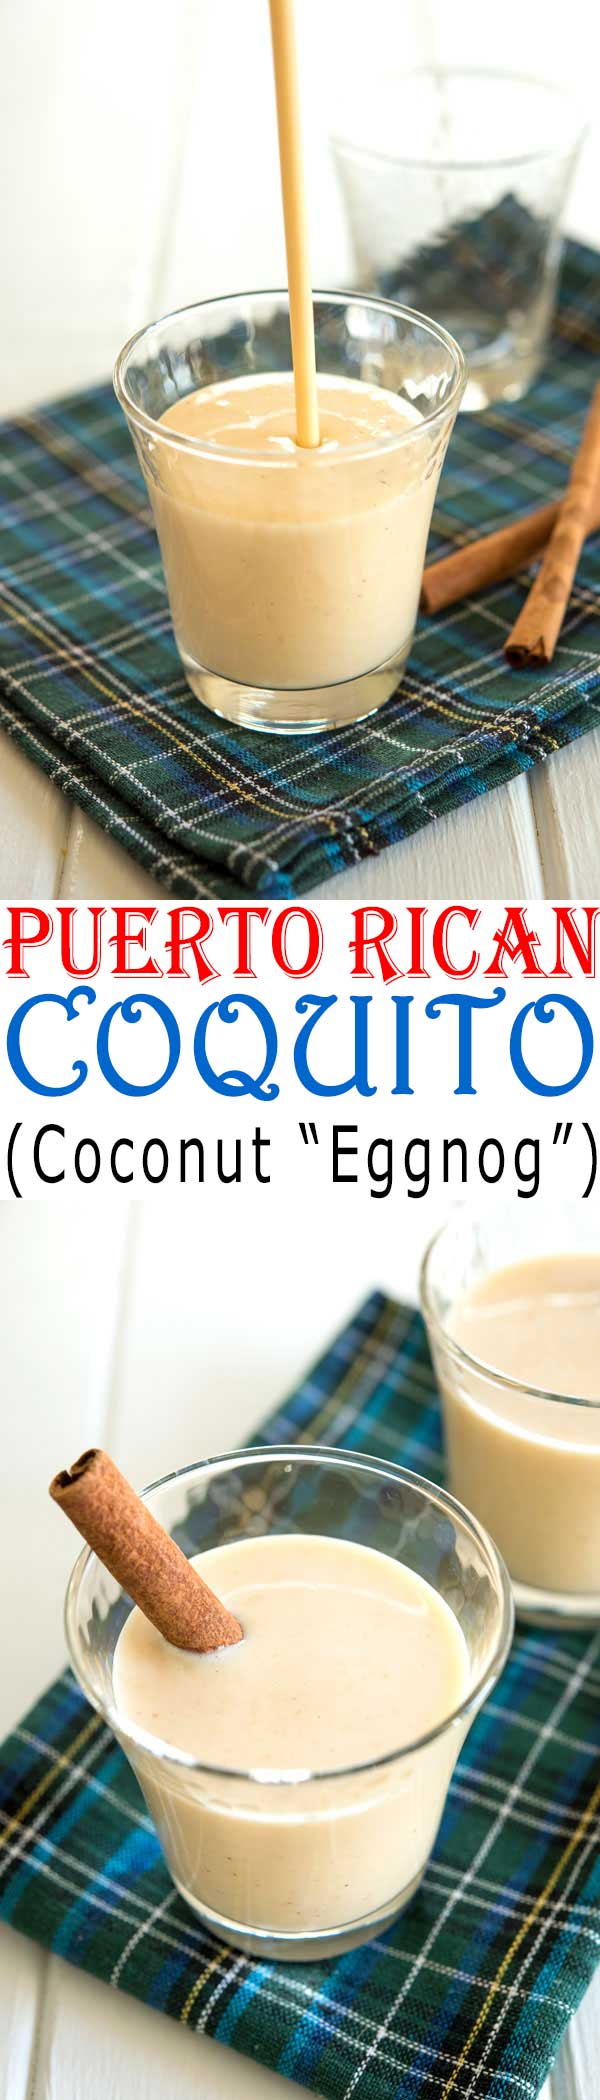 "How to make the best Puerto Rican Coquito - easy coconut ""eggnog"" with no eggs #cocktails #drinks"